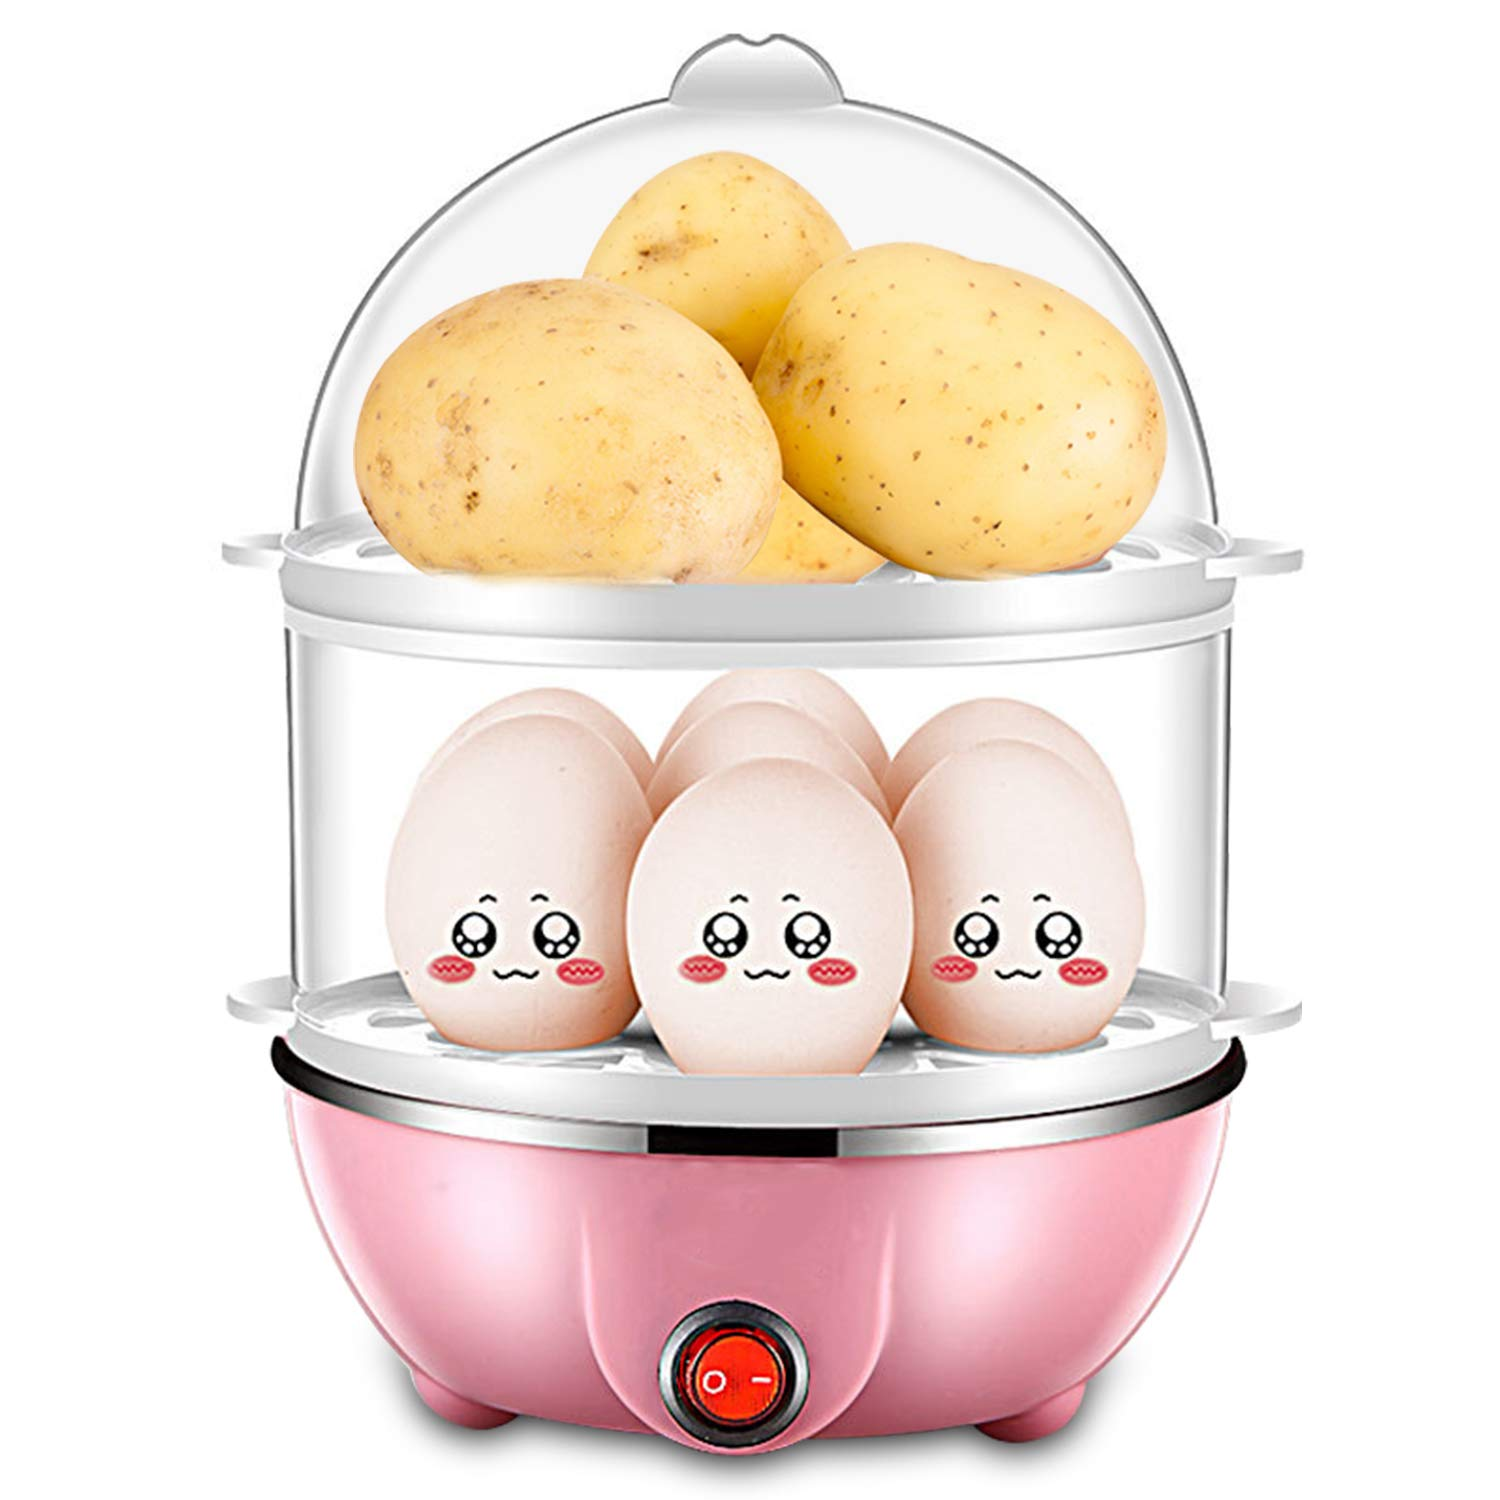 Egg Cooker,Intelligent Egg Steamer with Measuring Cup and Multifunctional Dual Layer,DUODUOGO Egg Maker to Poach Eggs, Omelet and Steam Foods with Auto Shut Off.7 or 14 Eggs Capacity-Pink